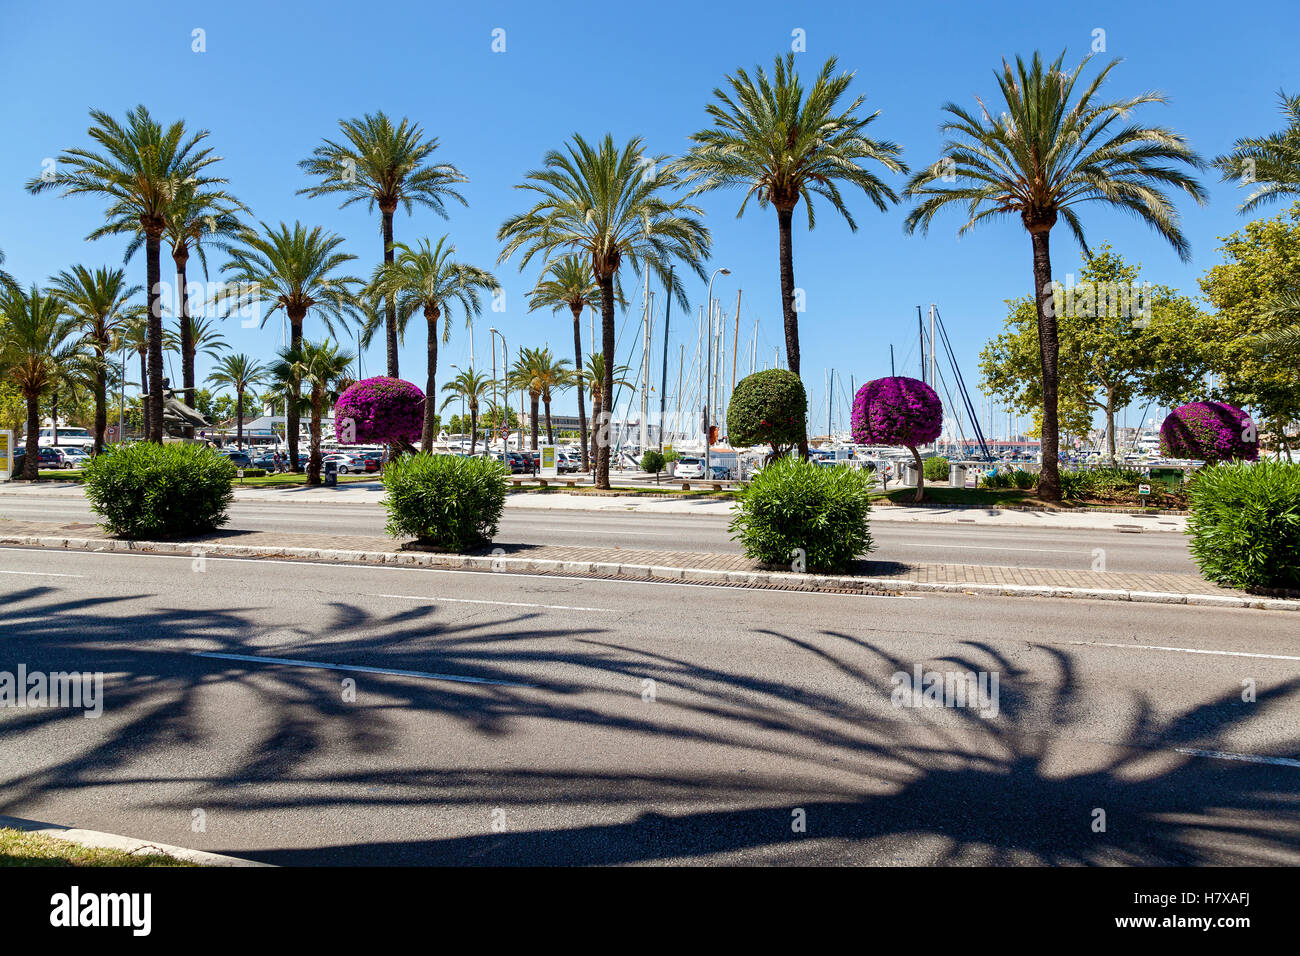 Quay in Palma de Mallorca. Quay in Palma de Mallorca on a sunny day that offers views of the port and plenty of - Stock Image